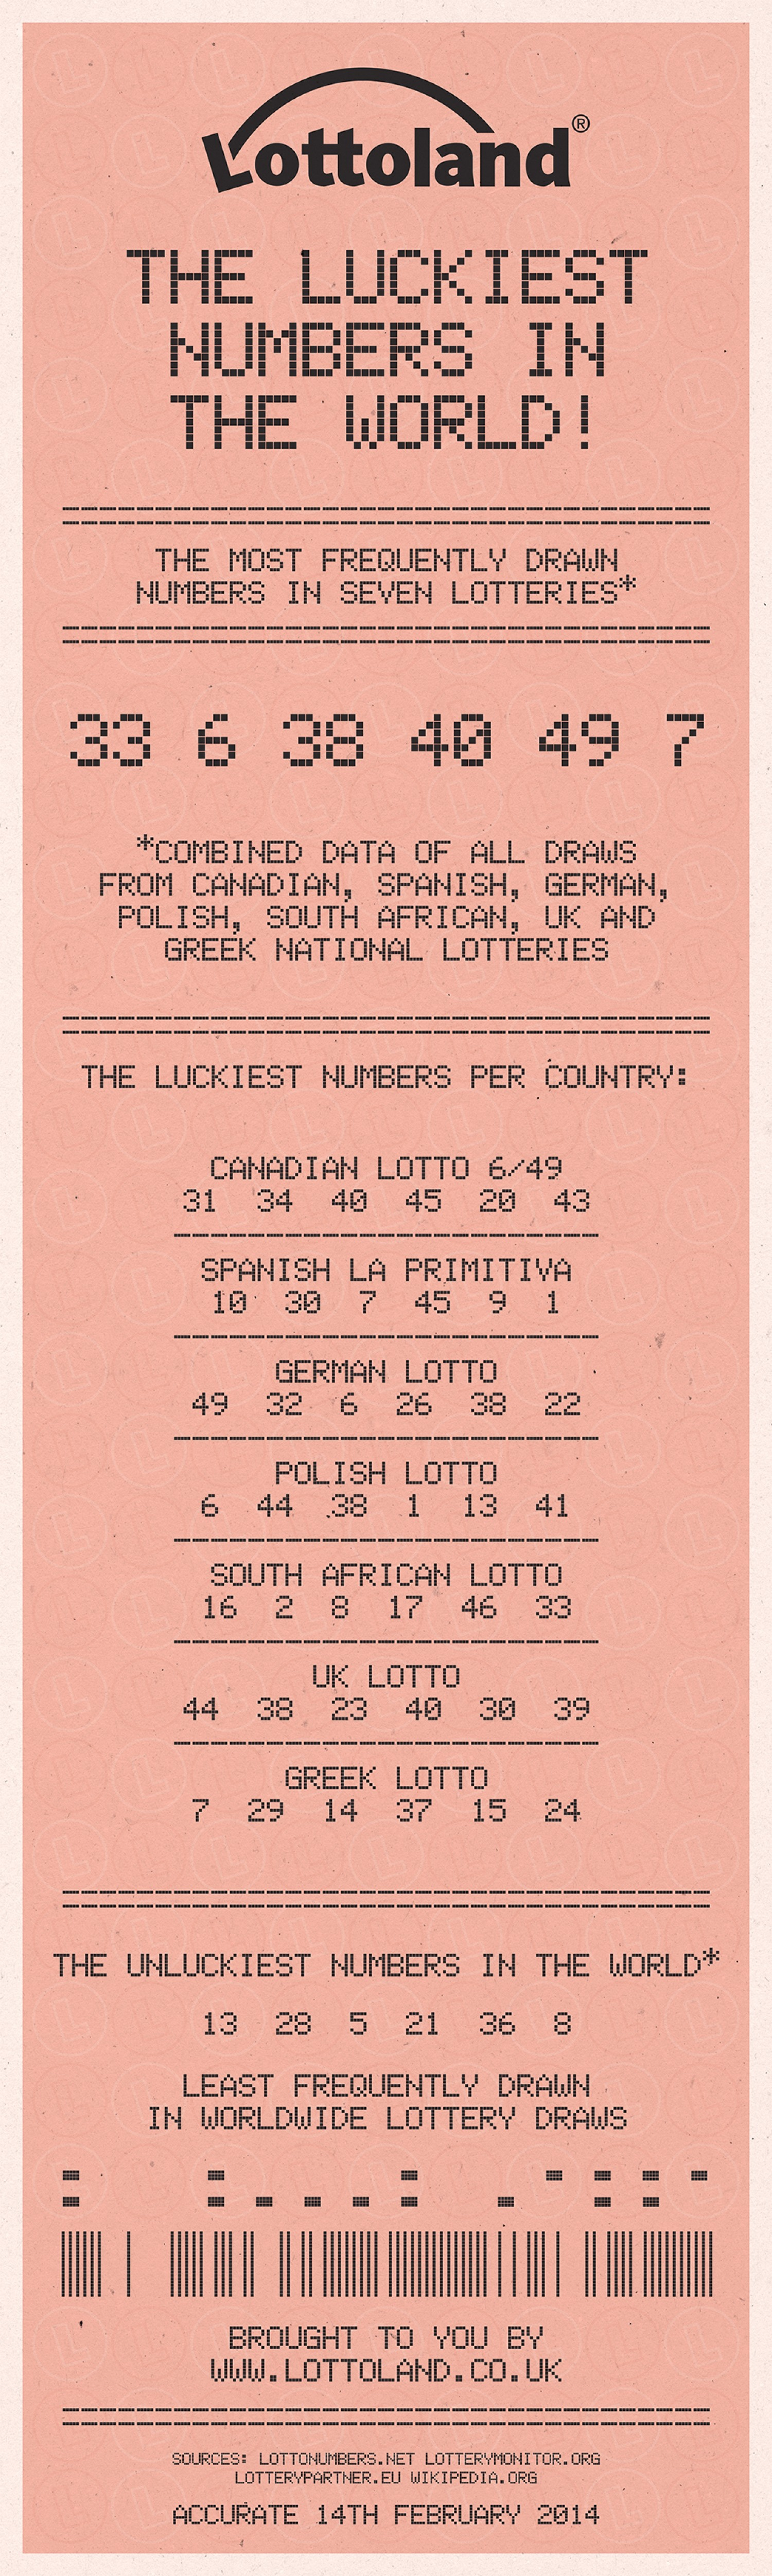 the-luckiest-numbers-in-the-world